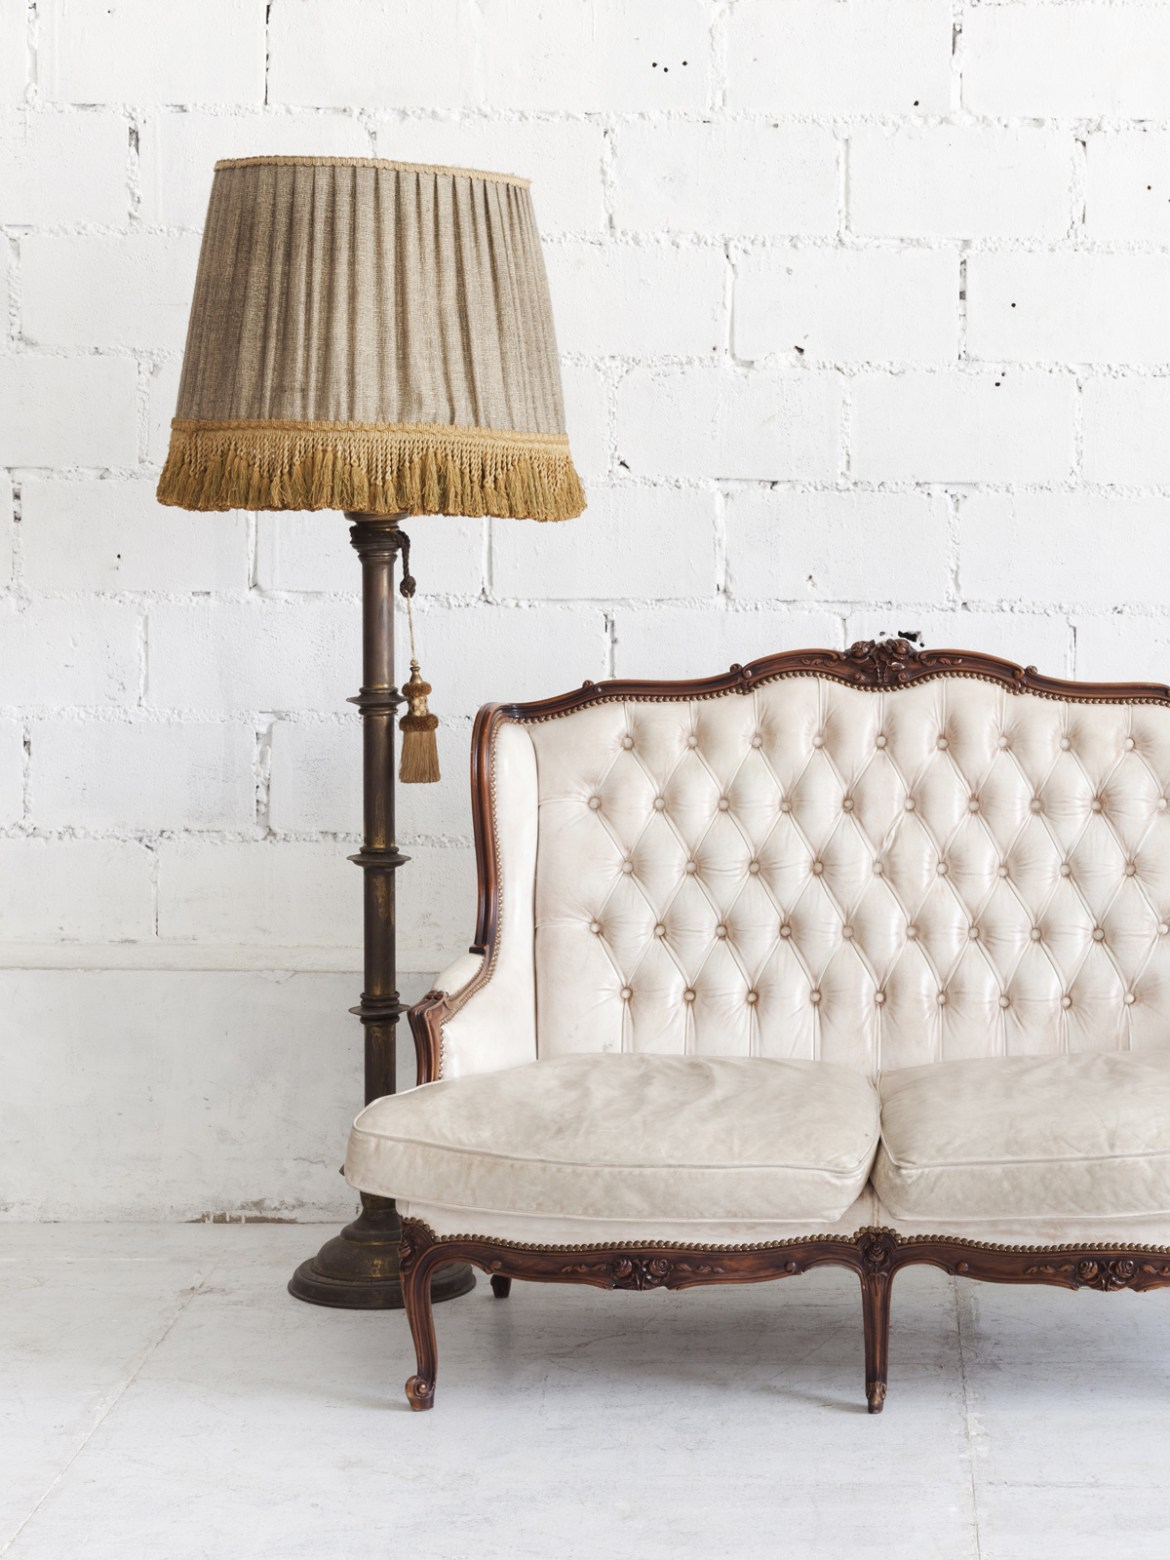 Antique white settee, lamp with fringed shade